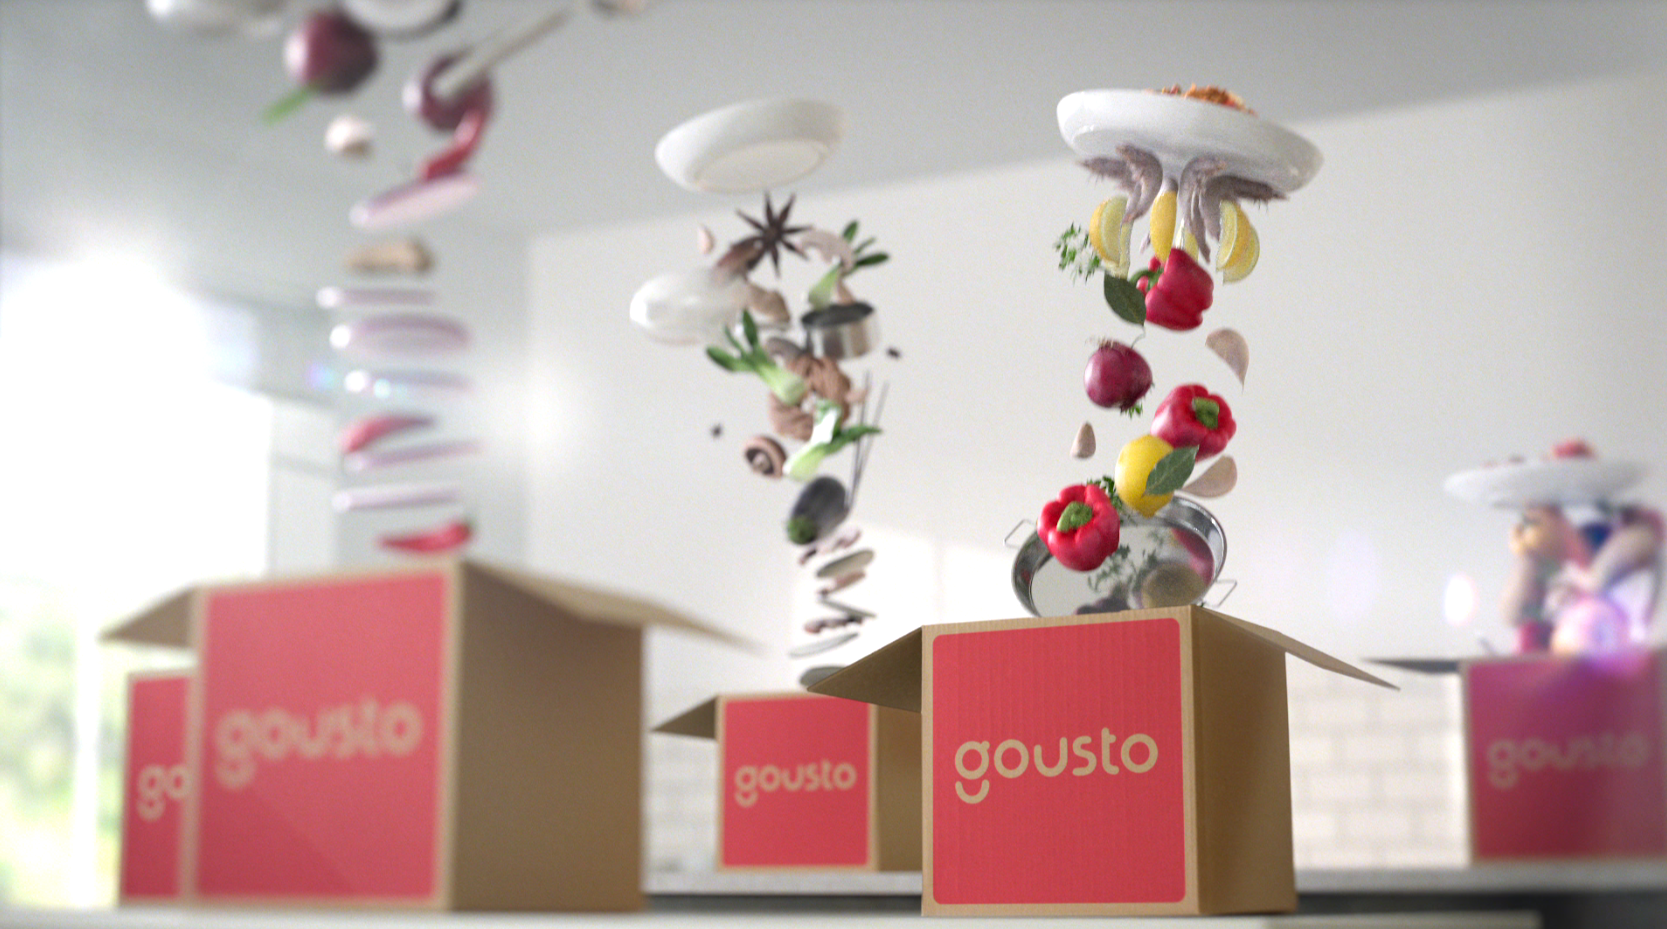 Gousto aims to make recipe boxes 'the UK's favourite way to eat dinner'